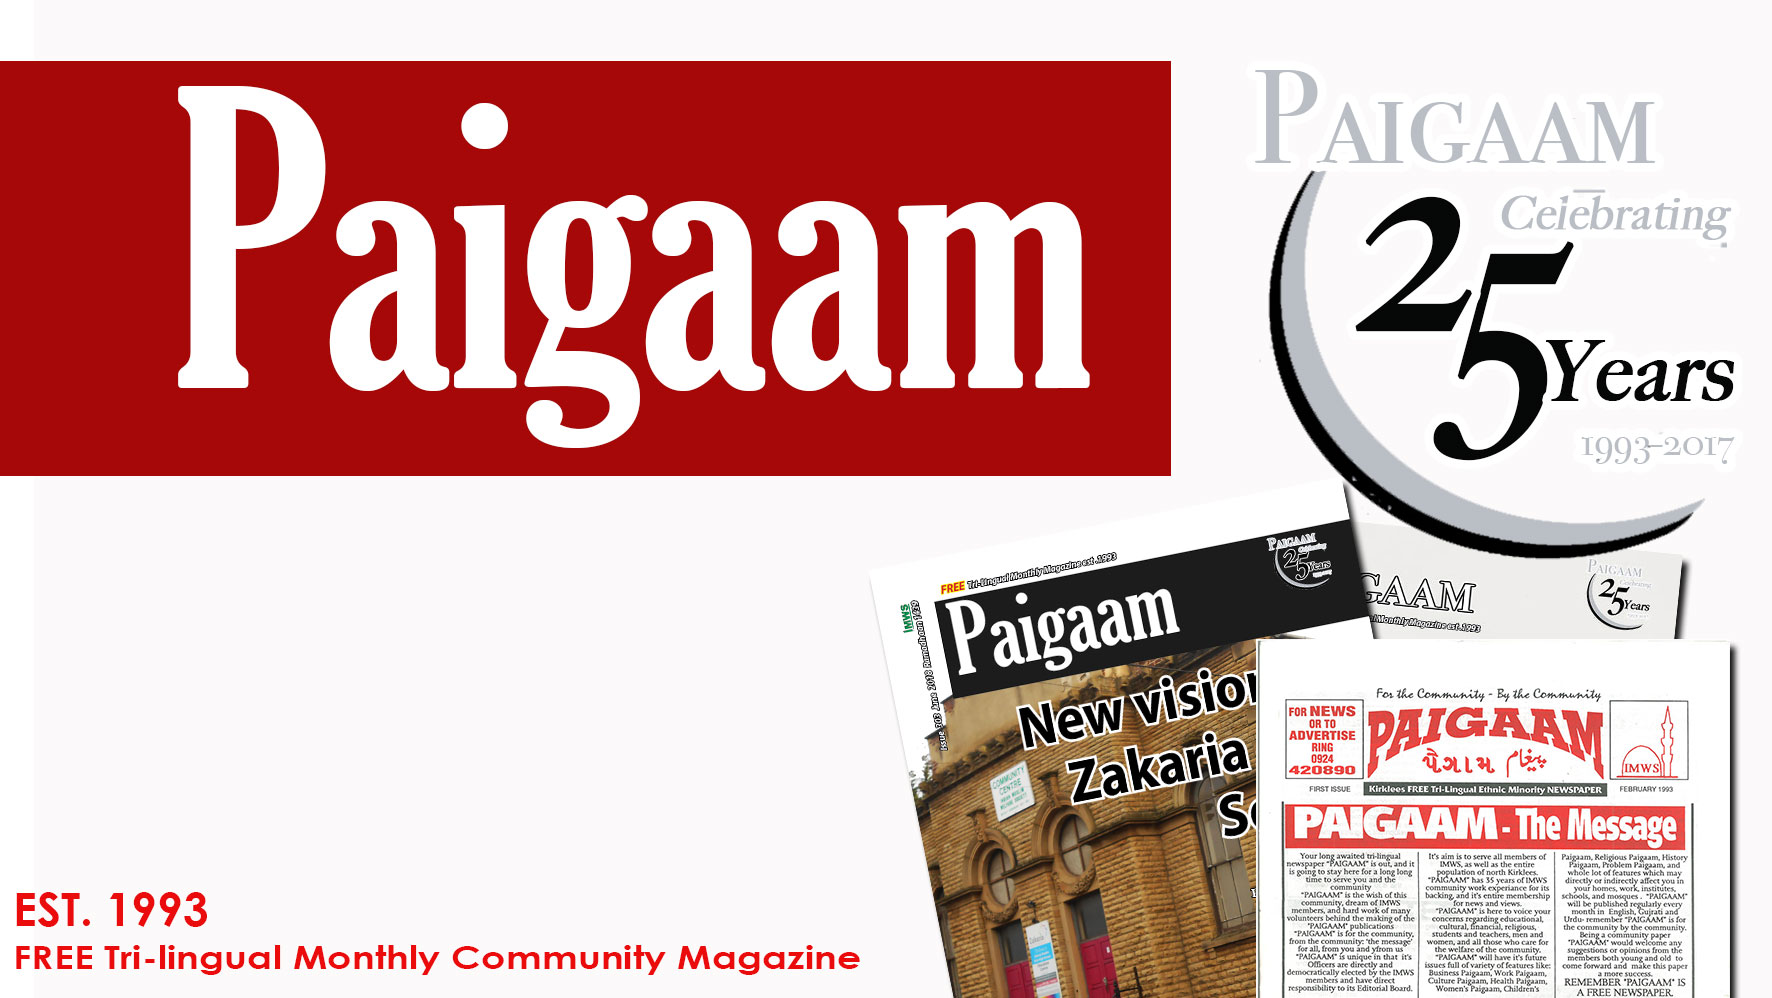 Wanted! Female committee members for Paigaam